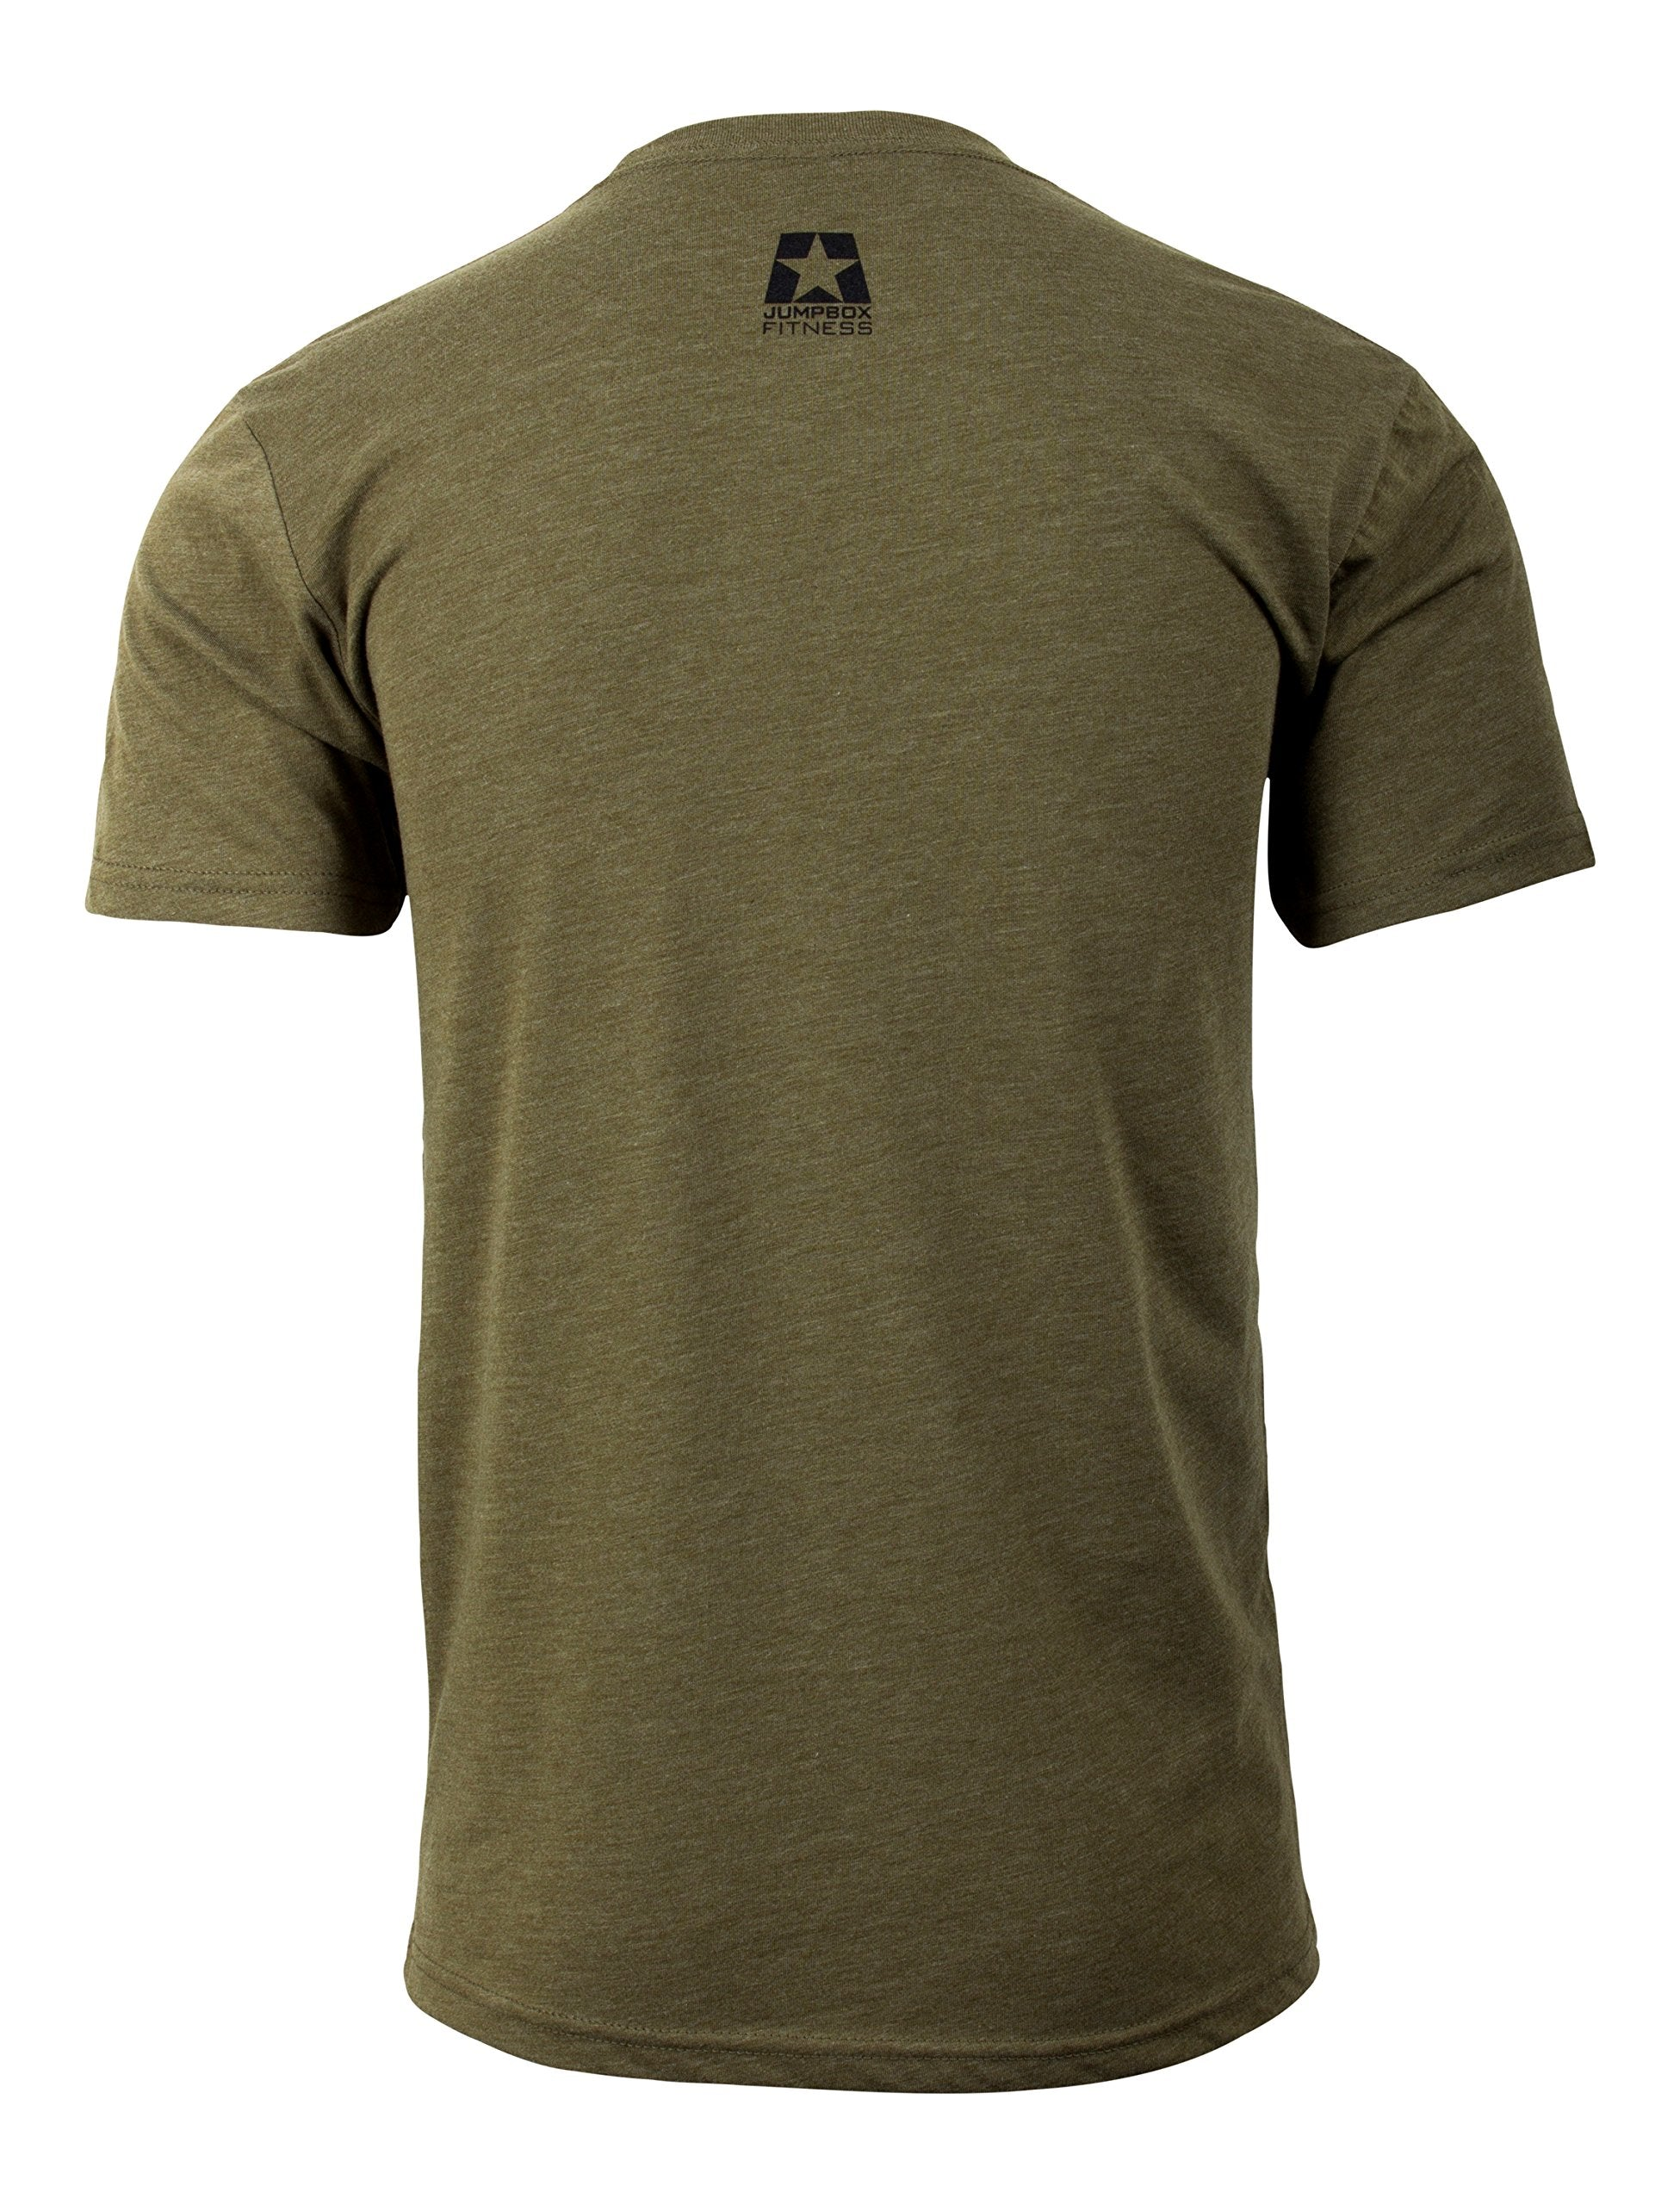 Jumpbox Fitness Raise the Bar - Military Green - Men's Barbell Weightlifting Triblend Workout T-shirt